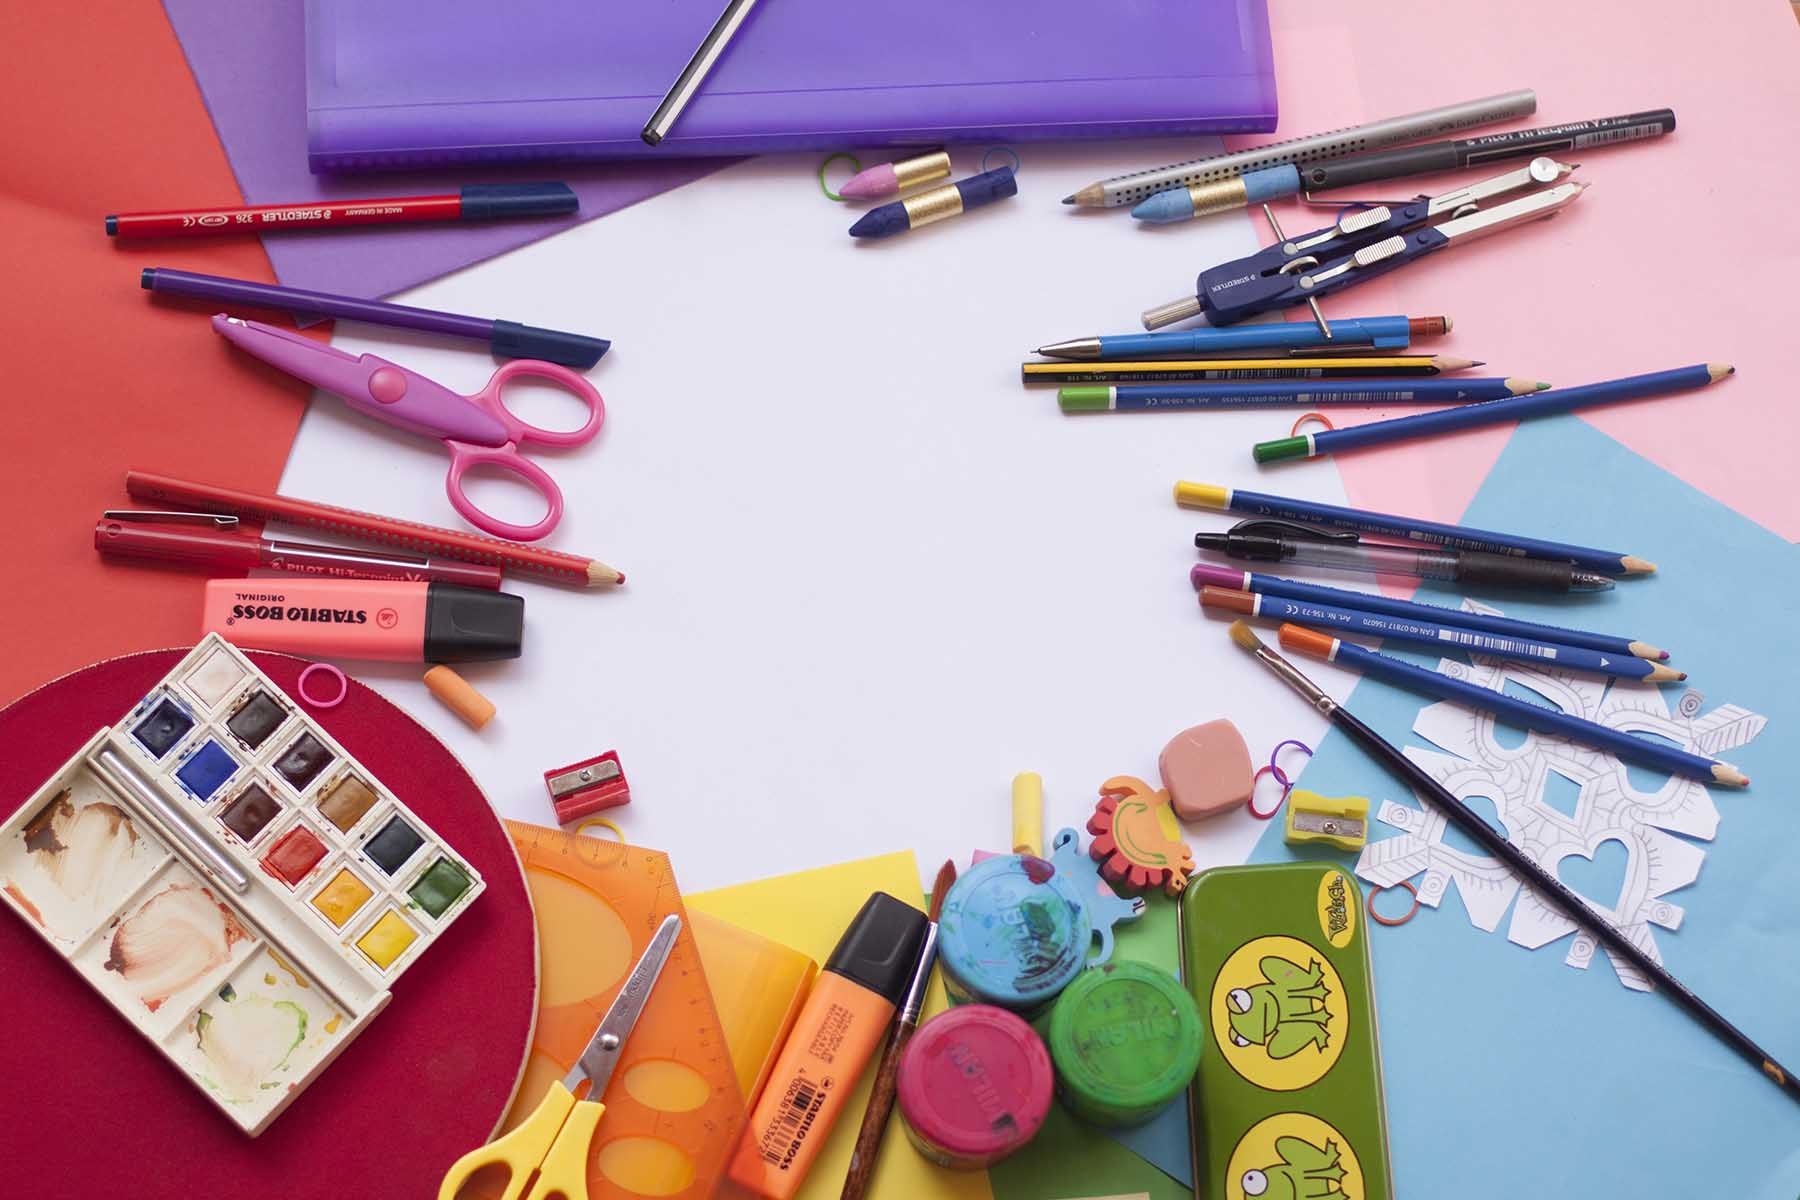 School supplies disorganized on table